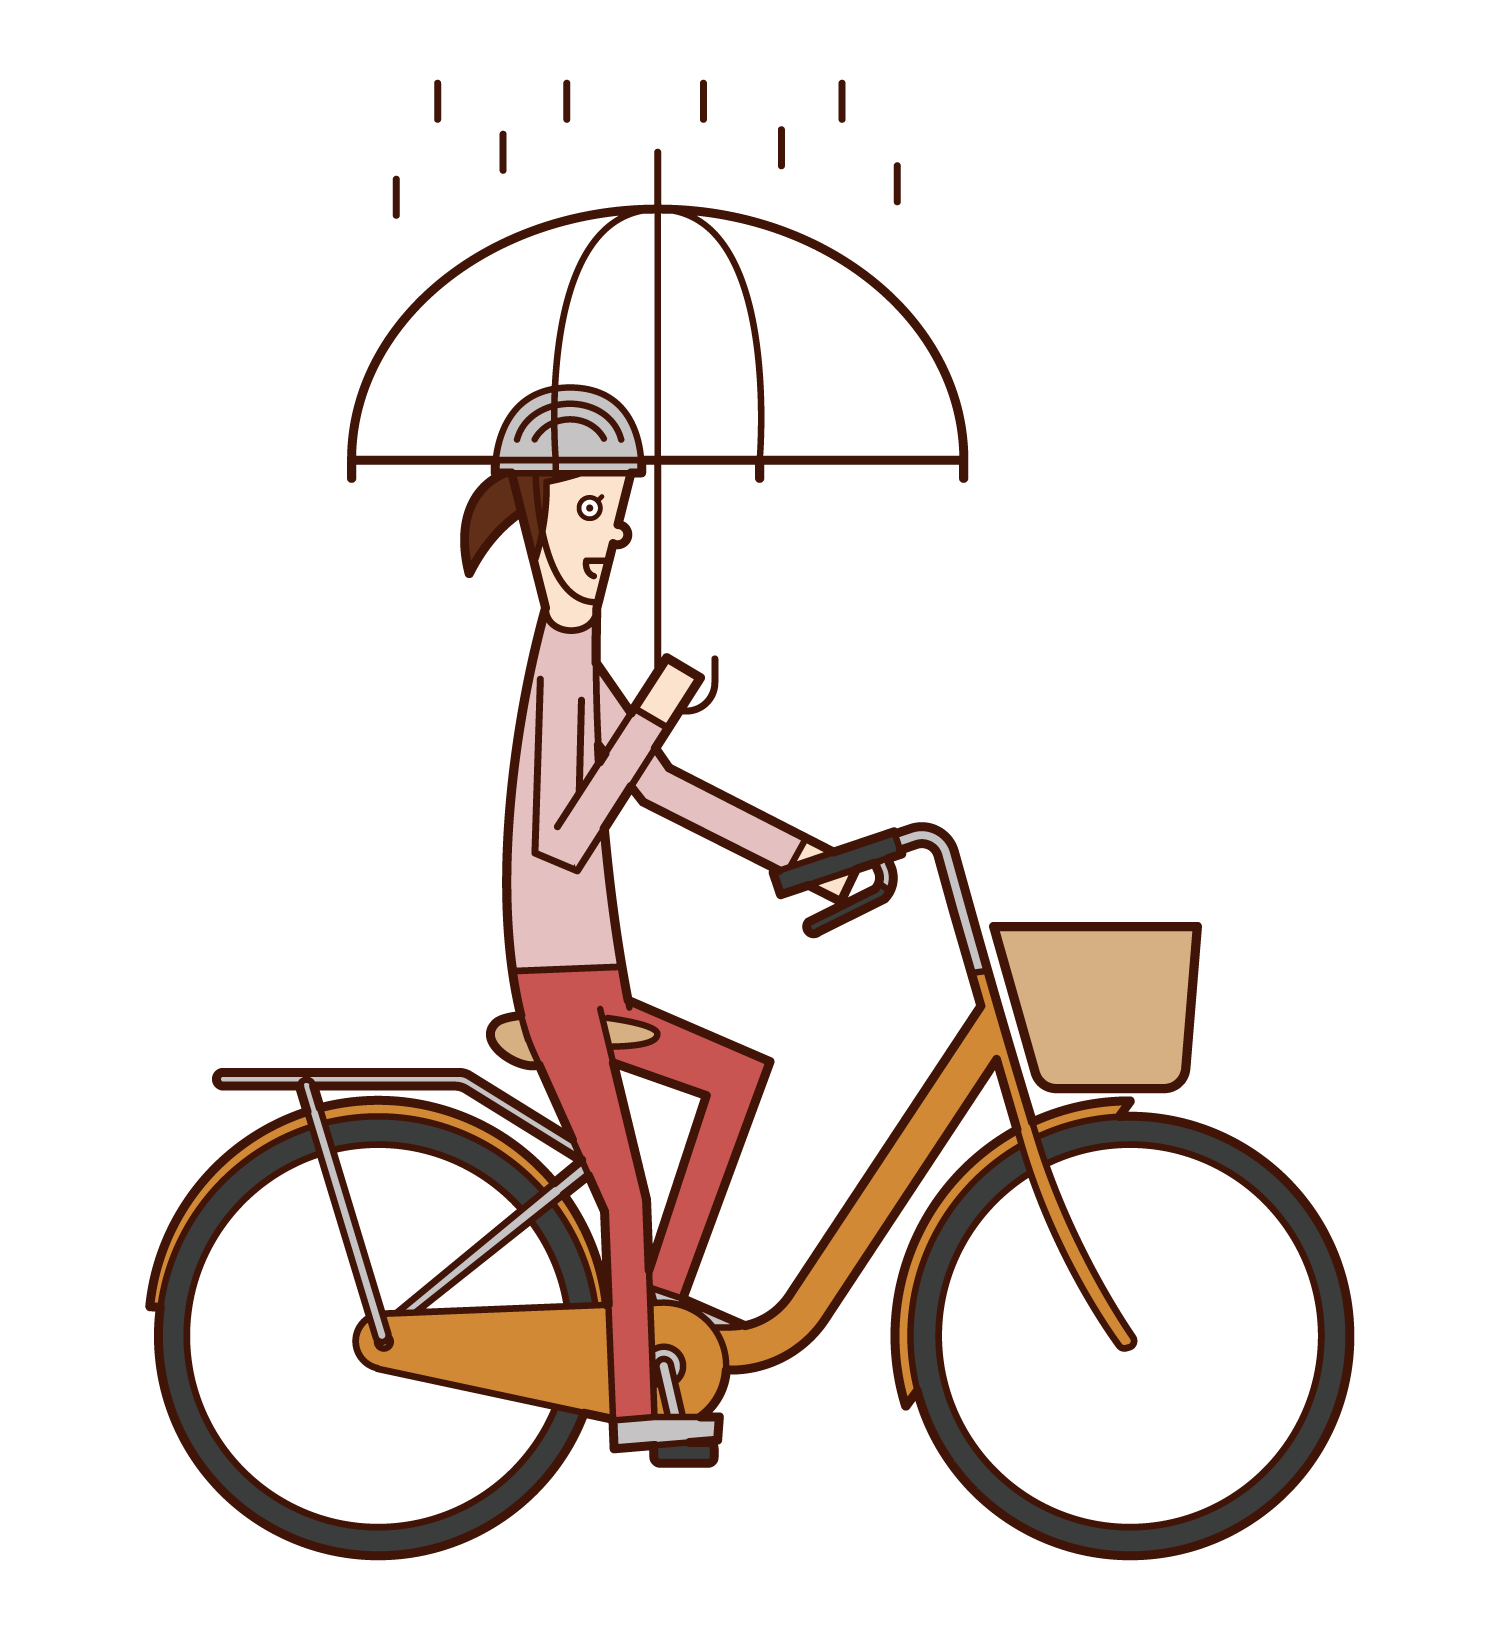 Illustration of a woman riding a bicycle with an umbrella